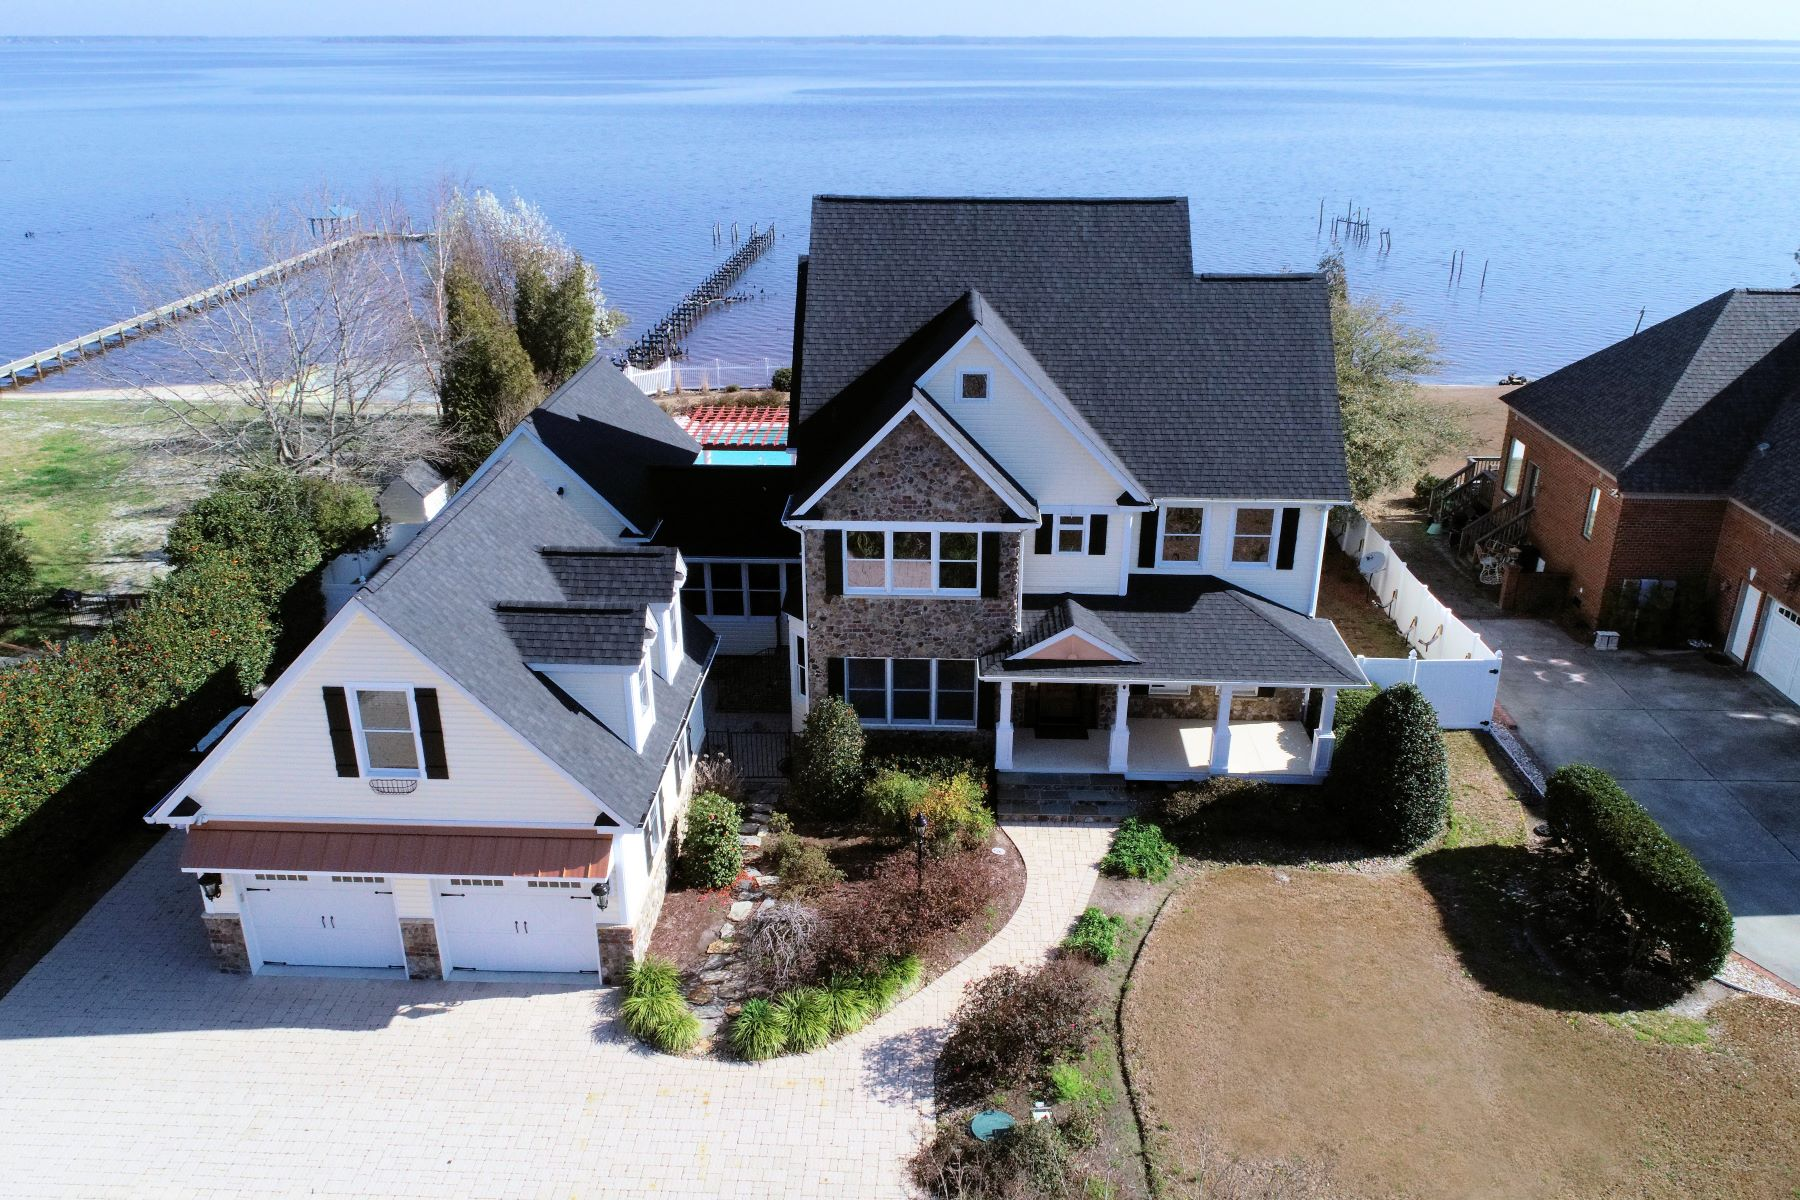 Single Family Homes for Sale at Incredible Waterfront Home, Spectacular Views 224 Drake Landing New Bern, North Carolina 28560 United States